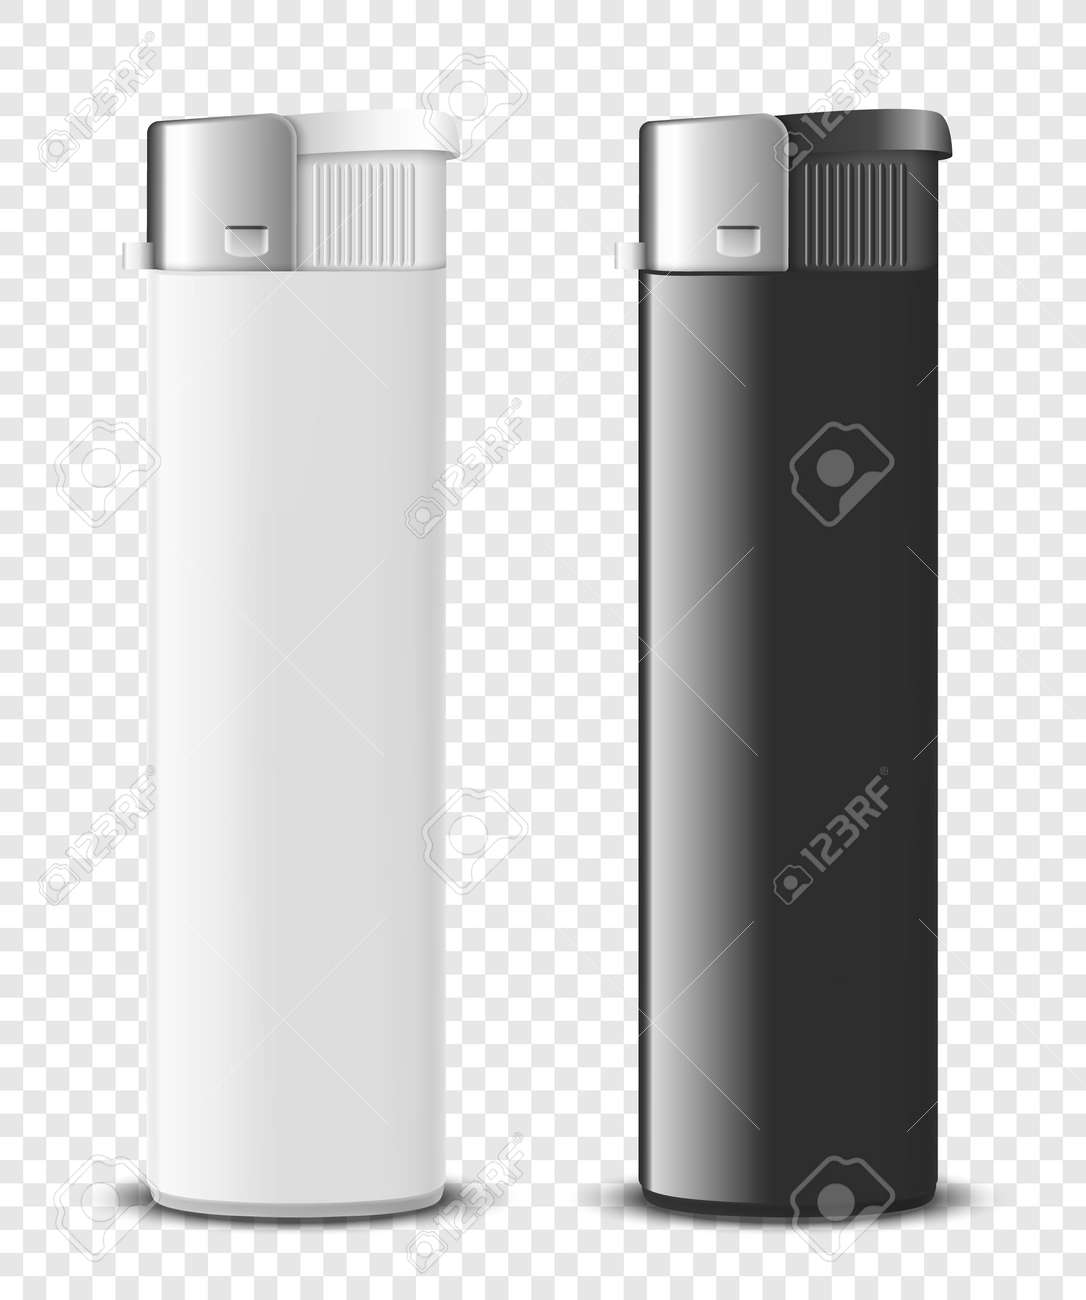 Vector 3d Realistic Blank White and Black Cigarette Lighter Set Closeup Isolated. Design Template for Advertising, Mockup, Corporate Identity. Front View - 173356838